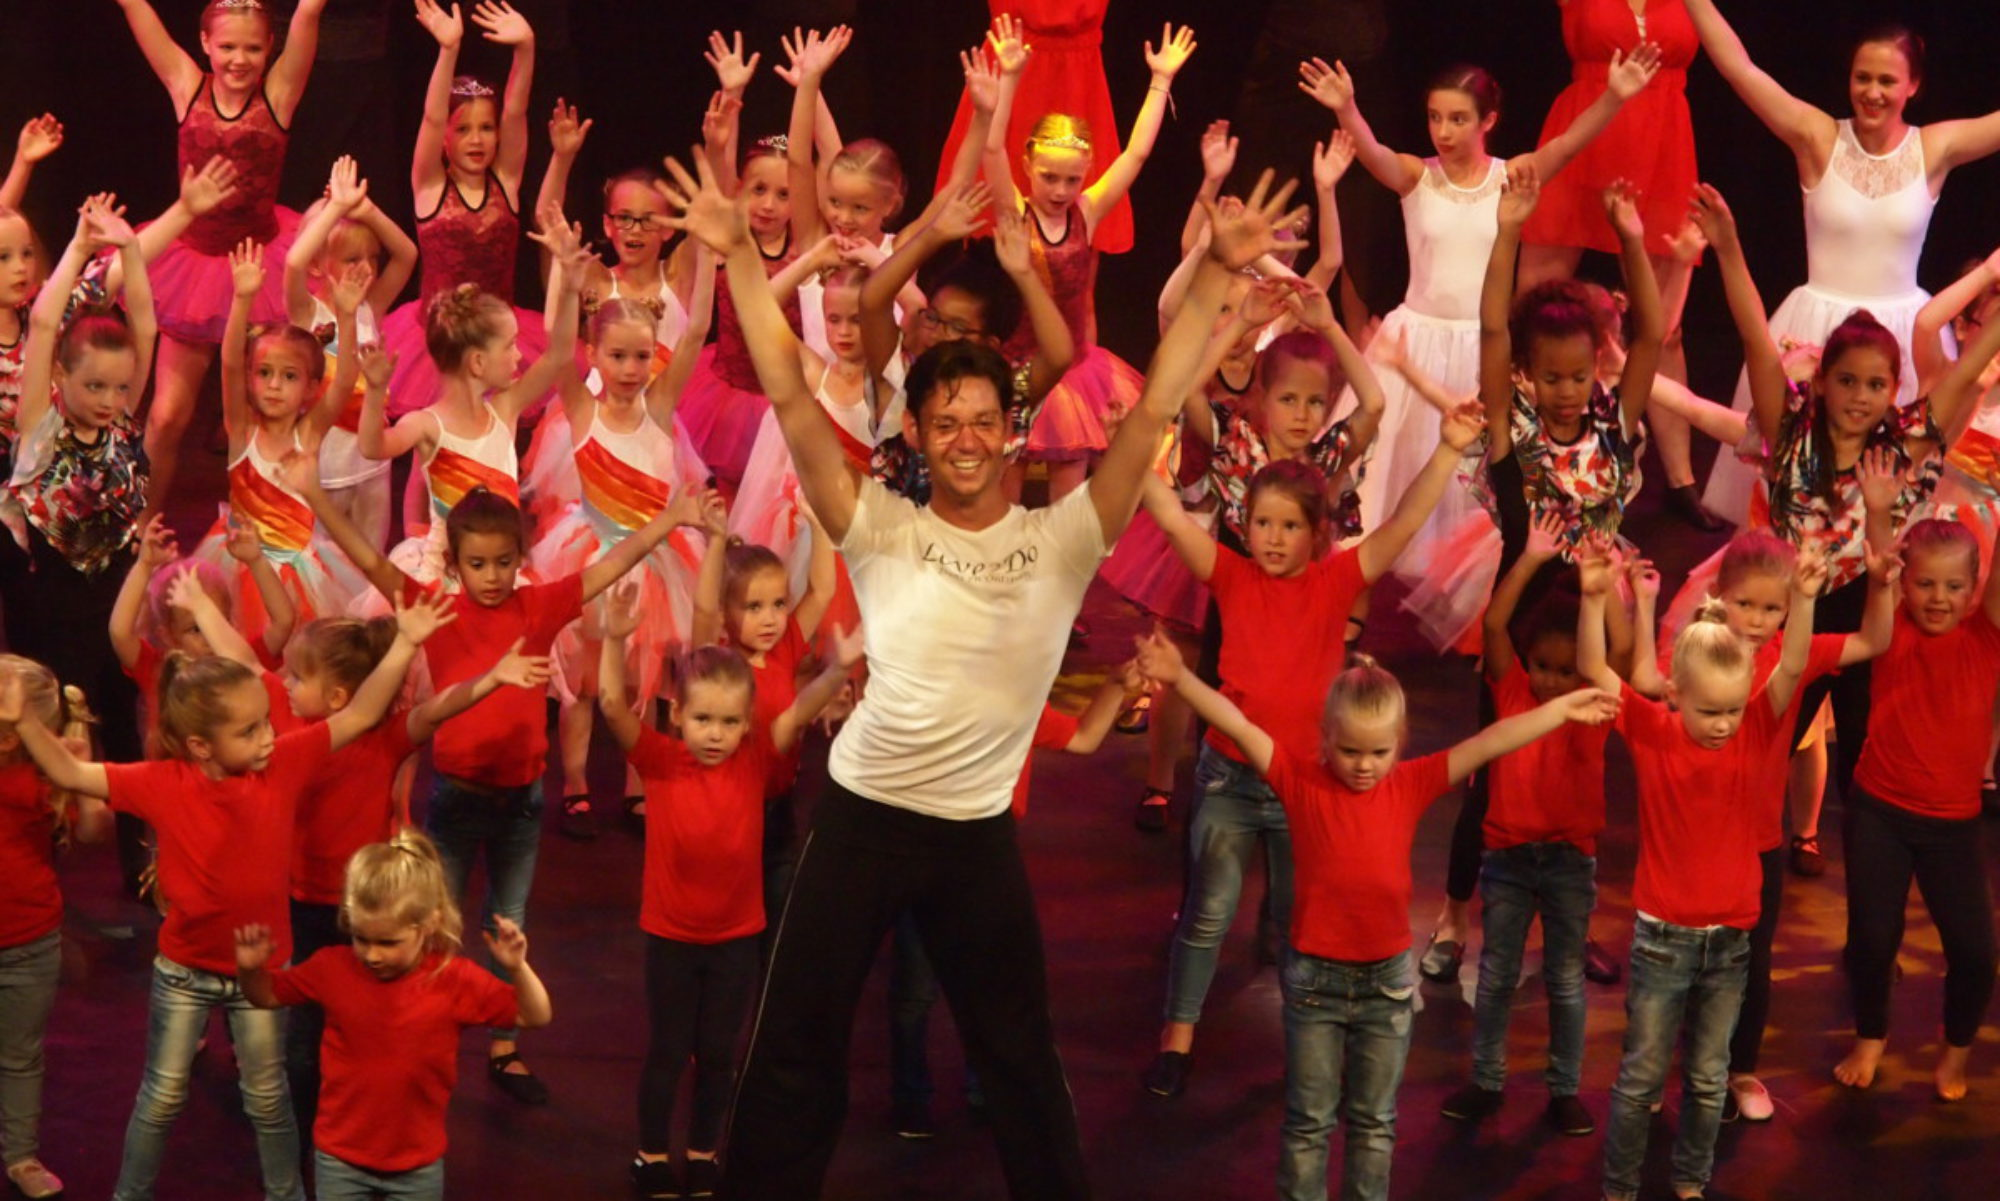 Dansschool Love2Do - De dansschool voor iedereen